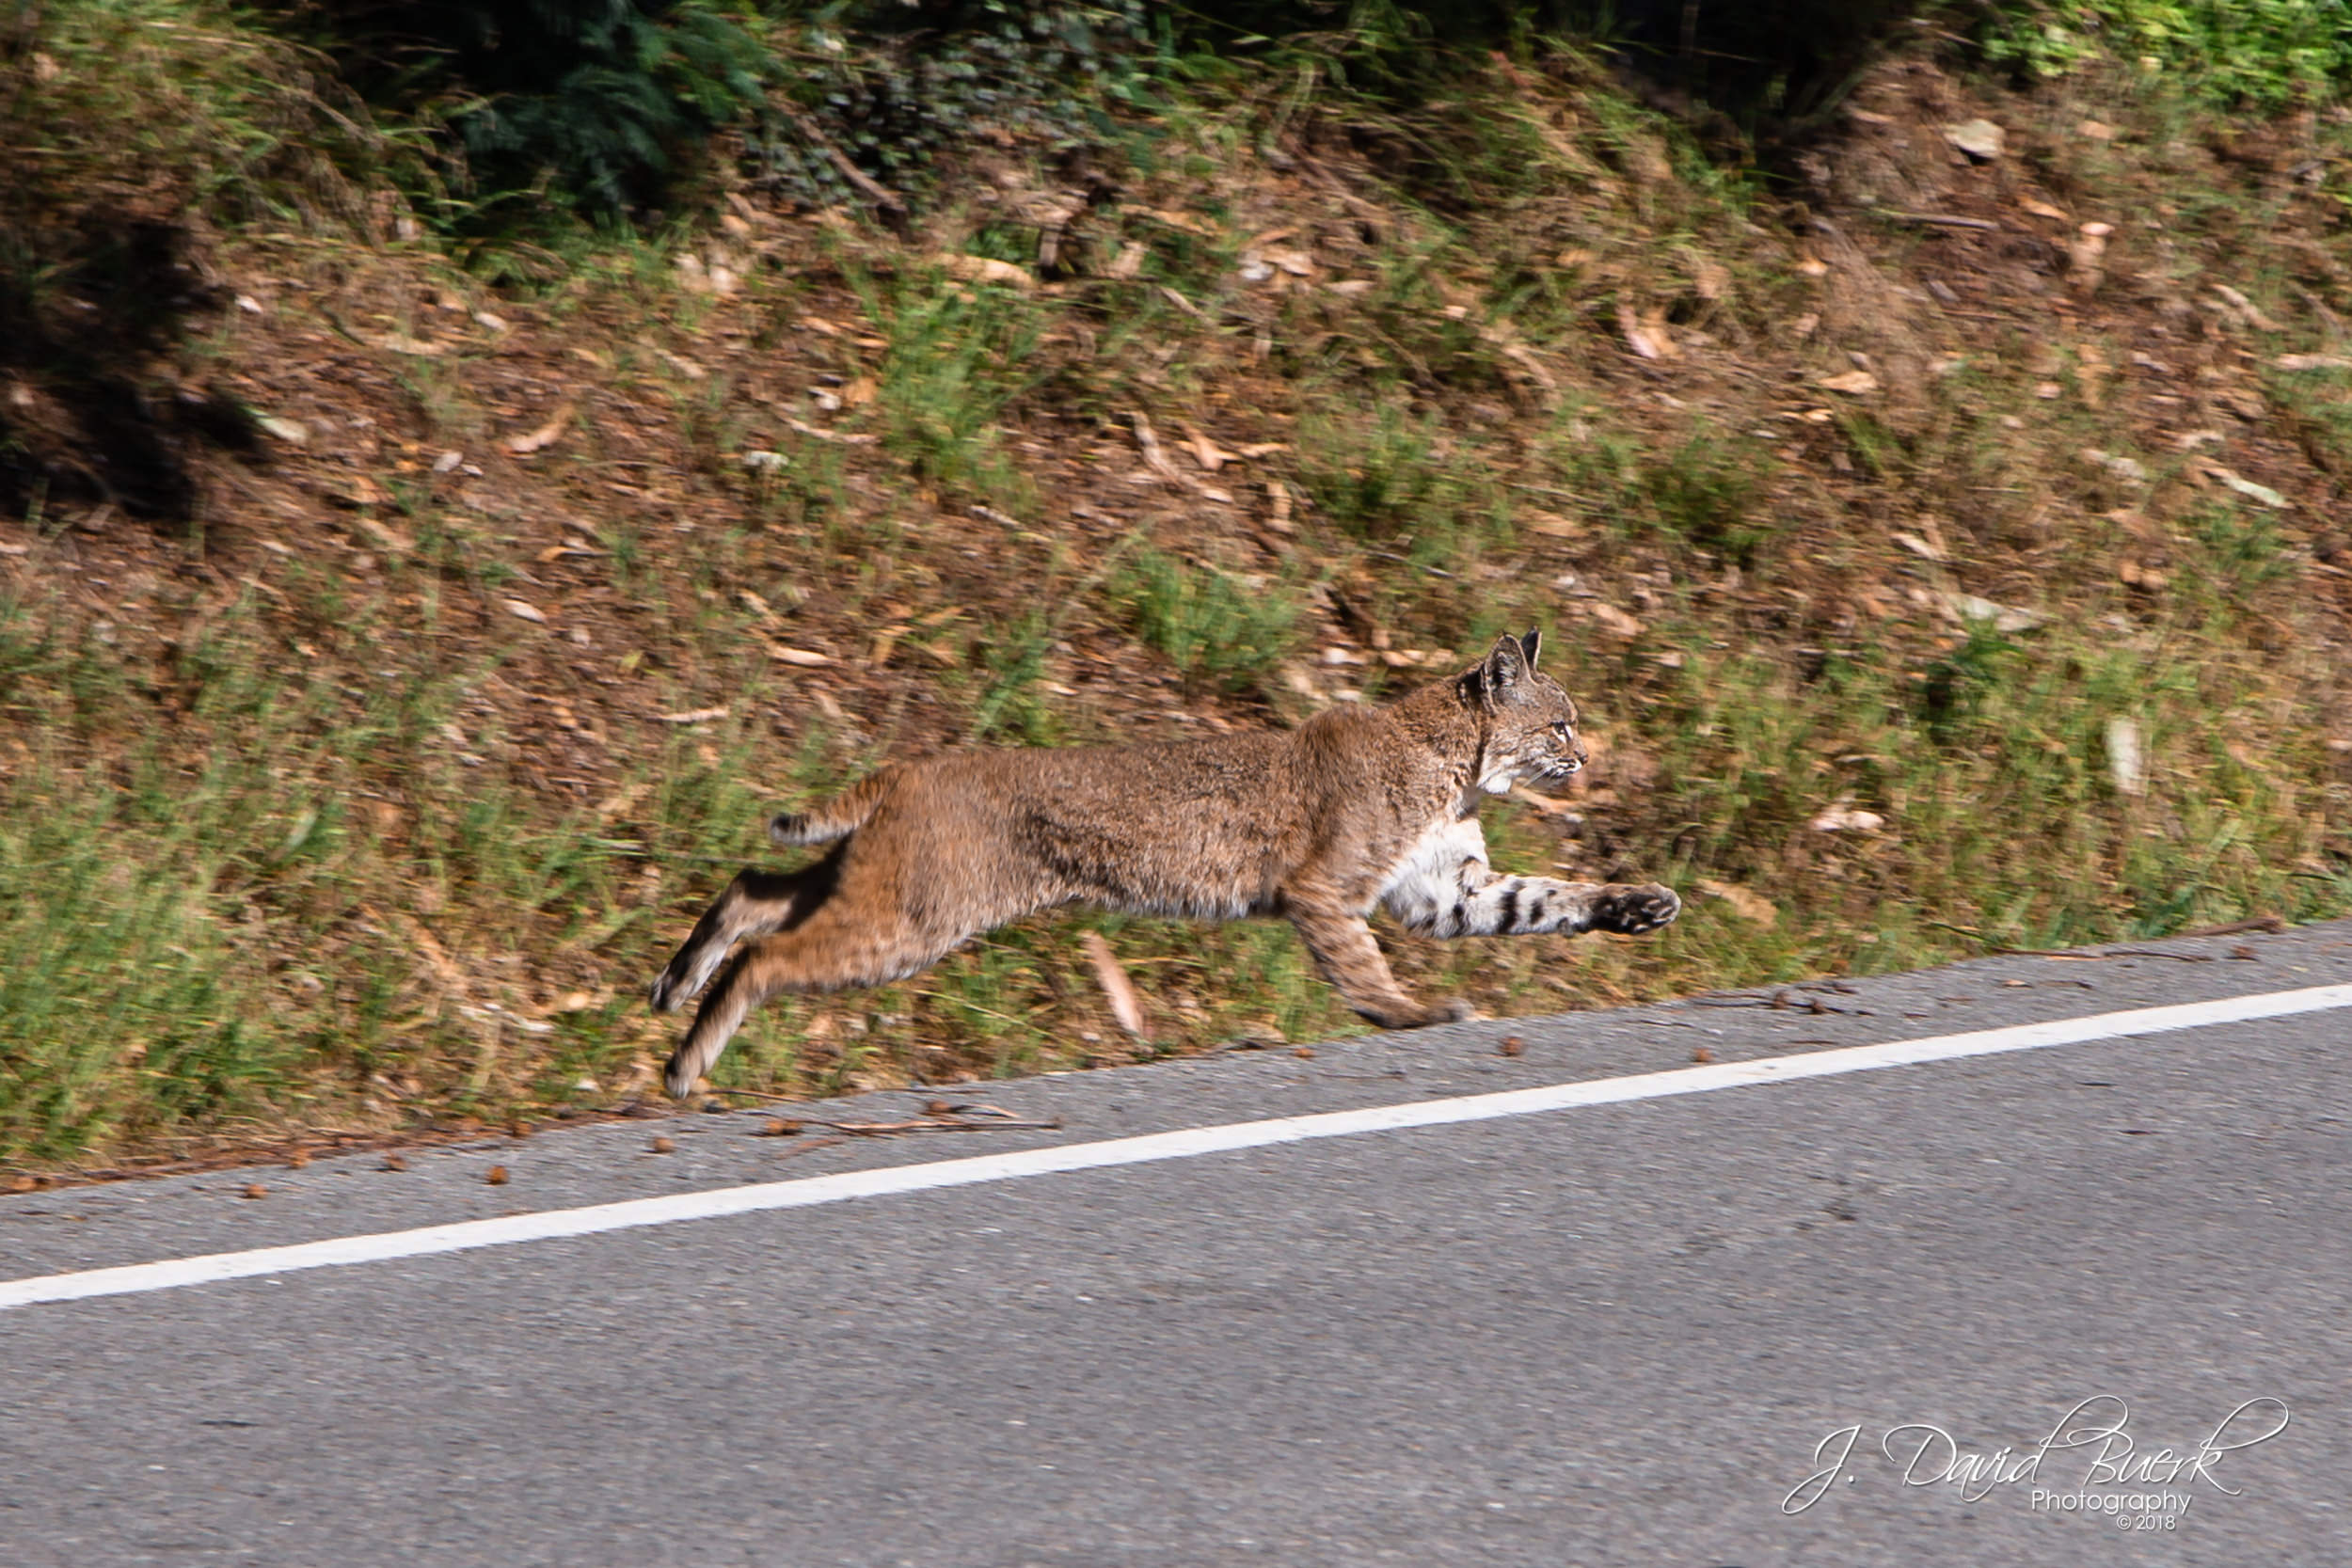 A bobcat crosses a road atop the Panoramic peak above Muir Woods, Mill Valley, California.